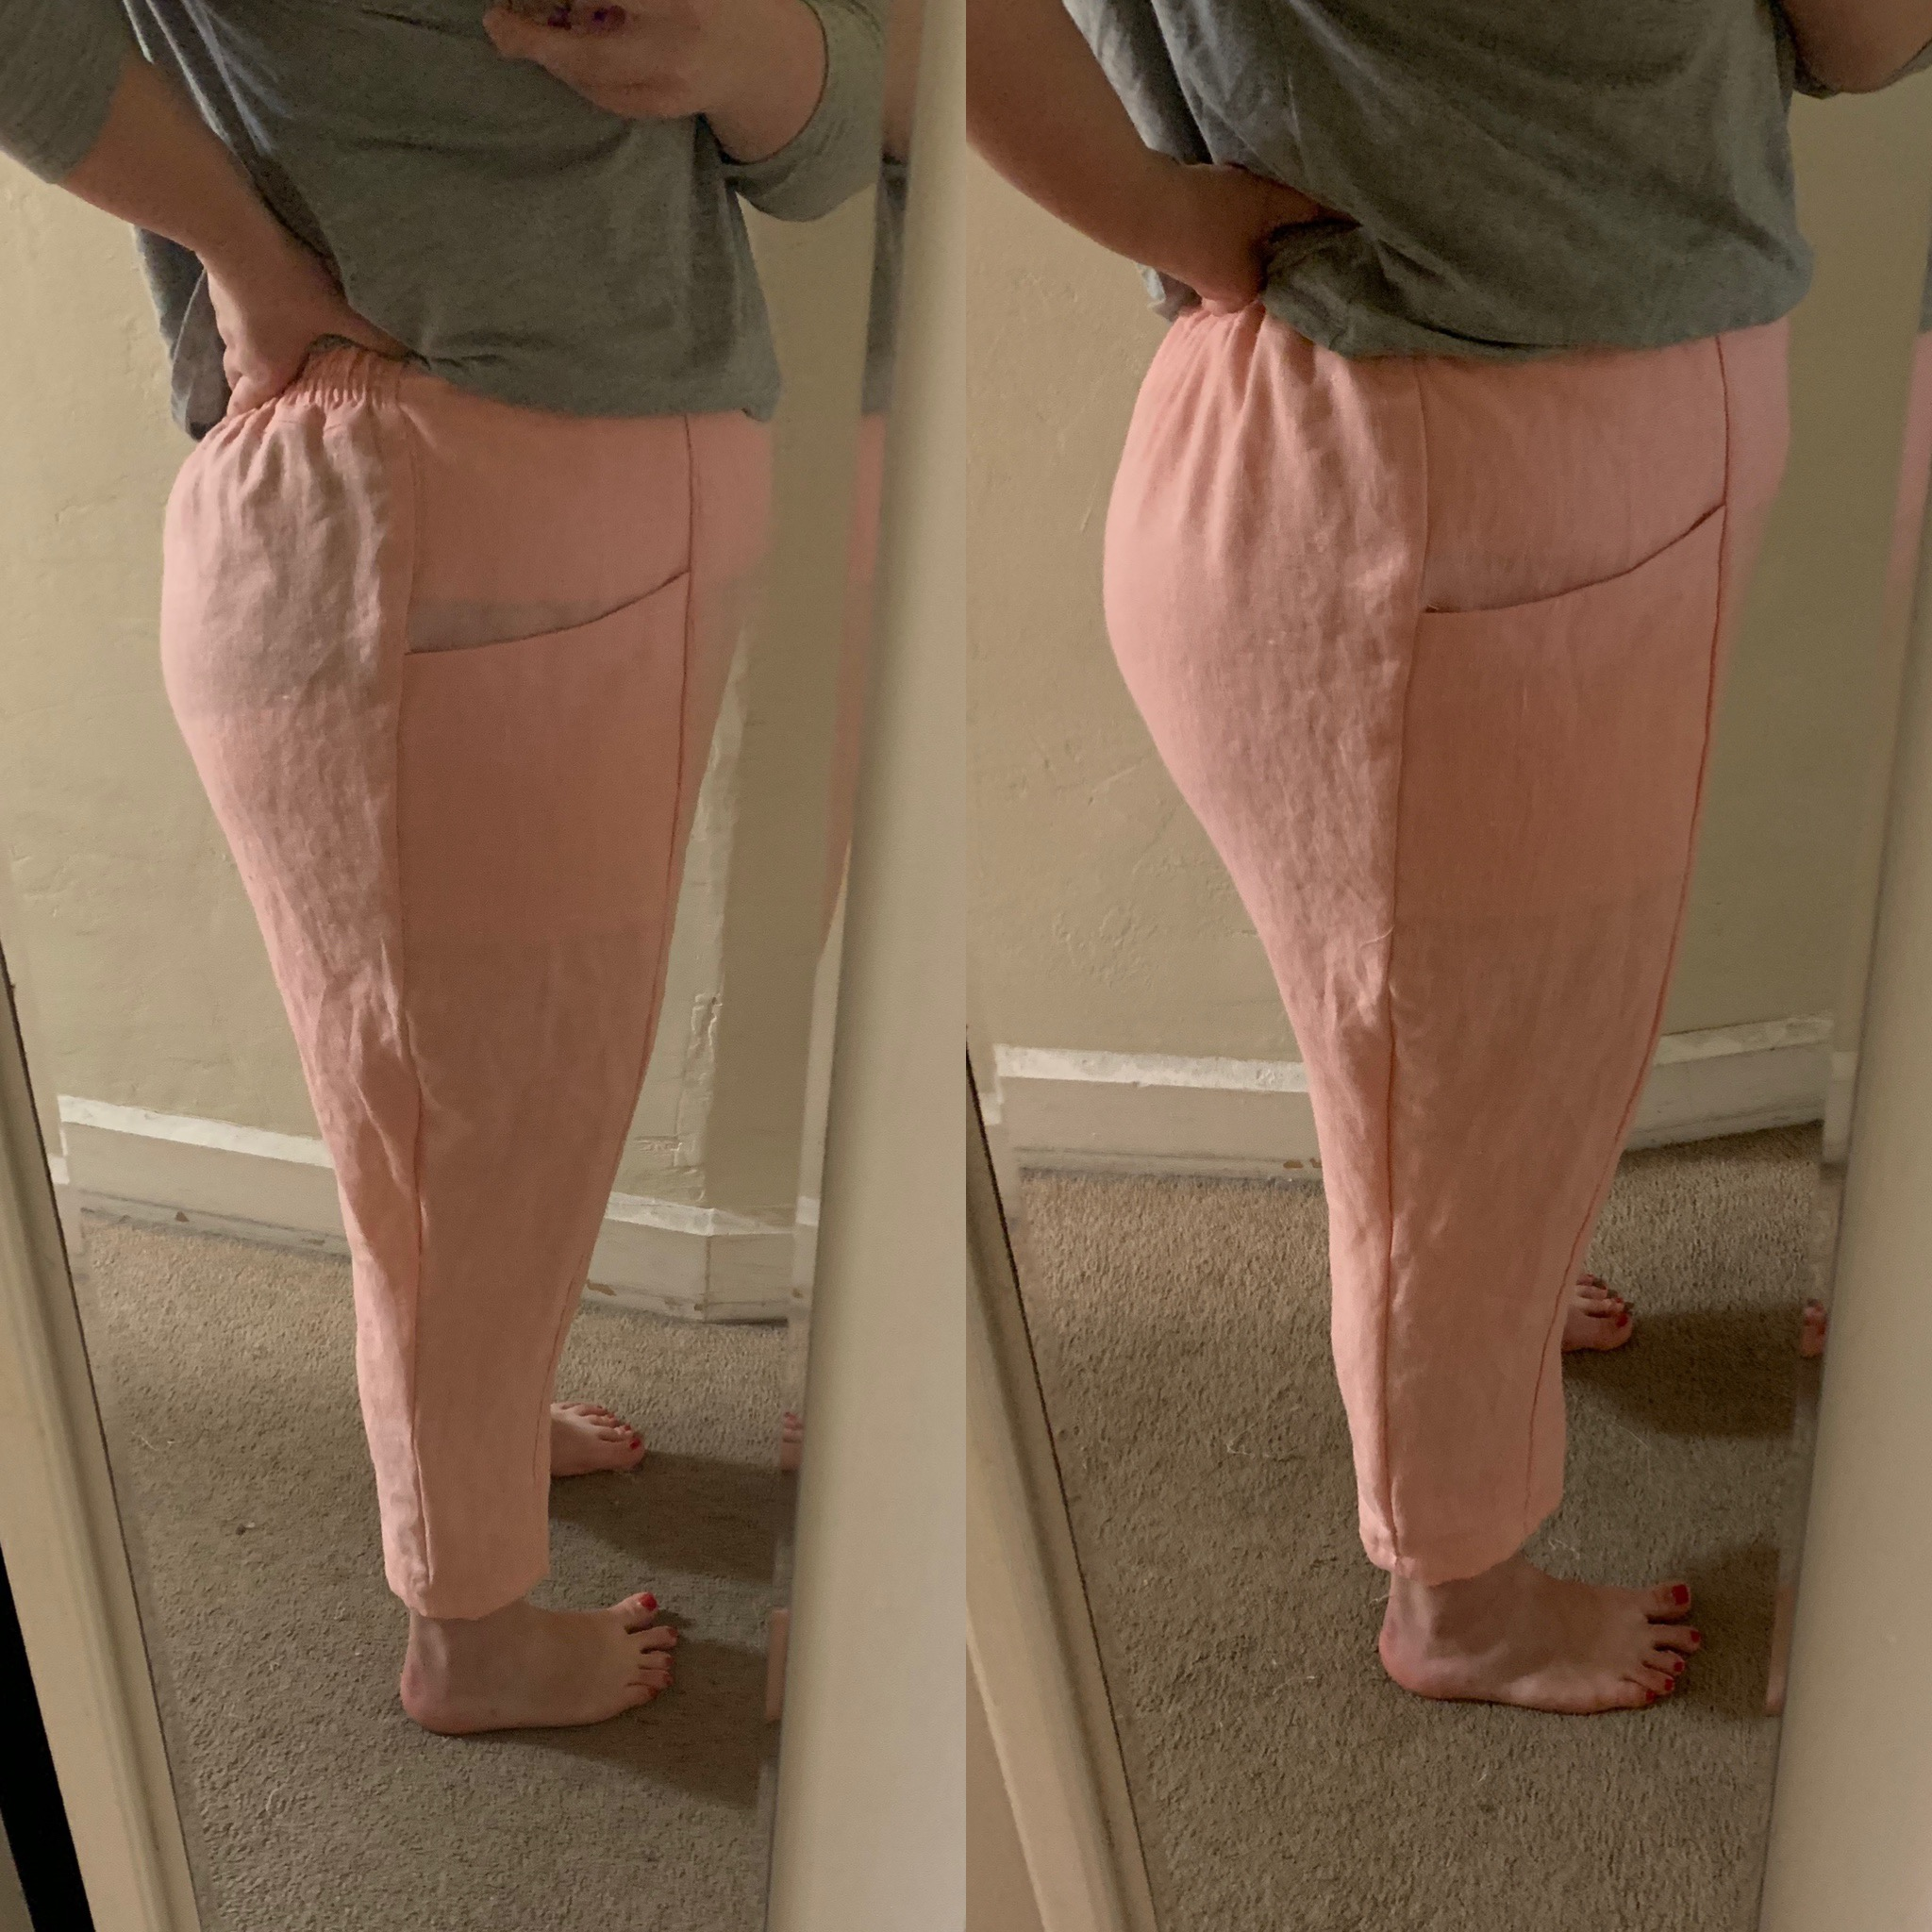 Version 2; Version 1 (note to self, no black underwear with these pants!) Also, let's smooth out the curve at the knee.